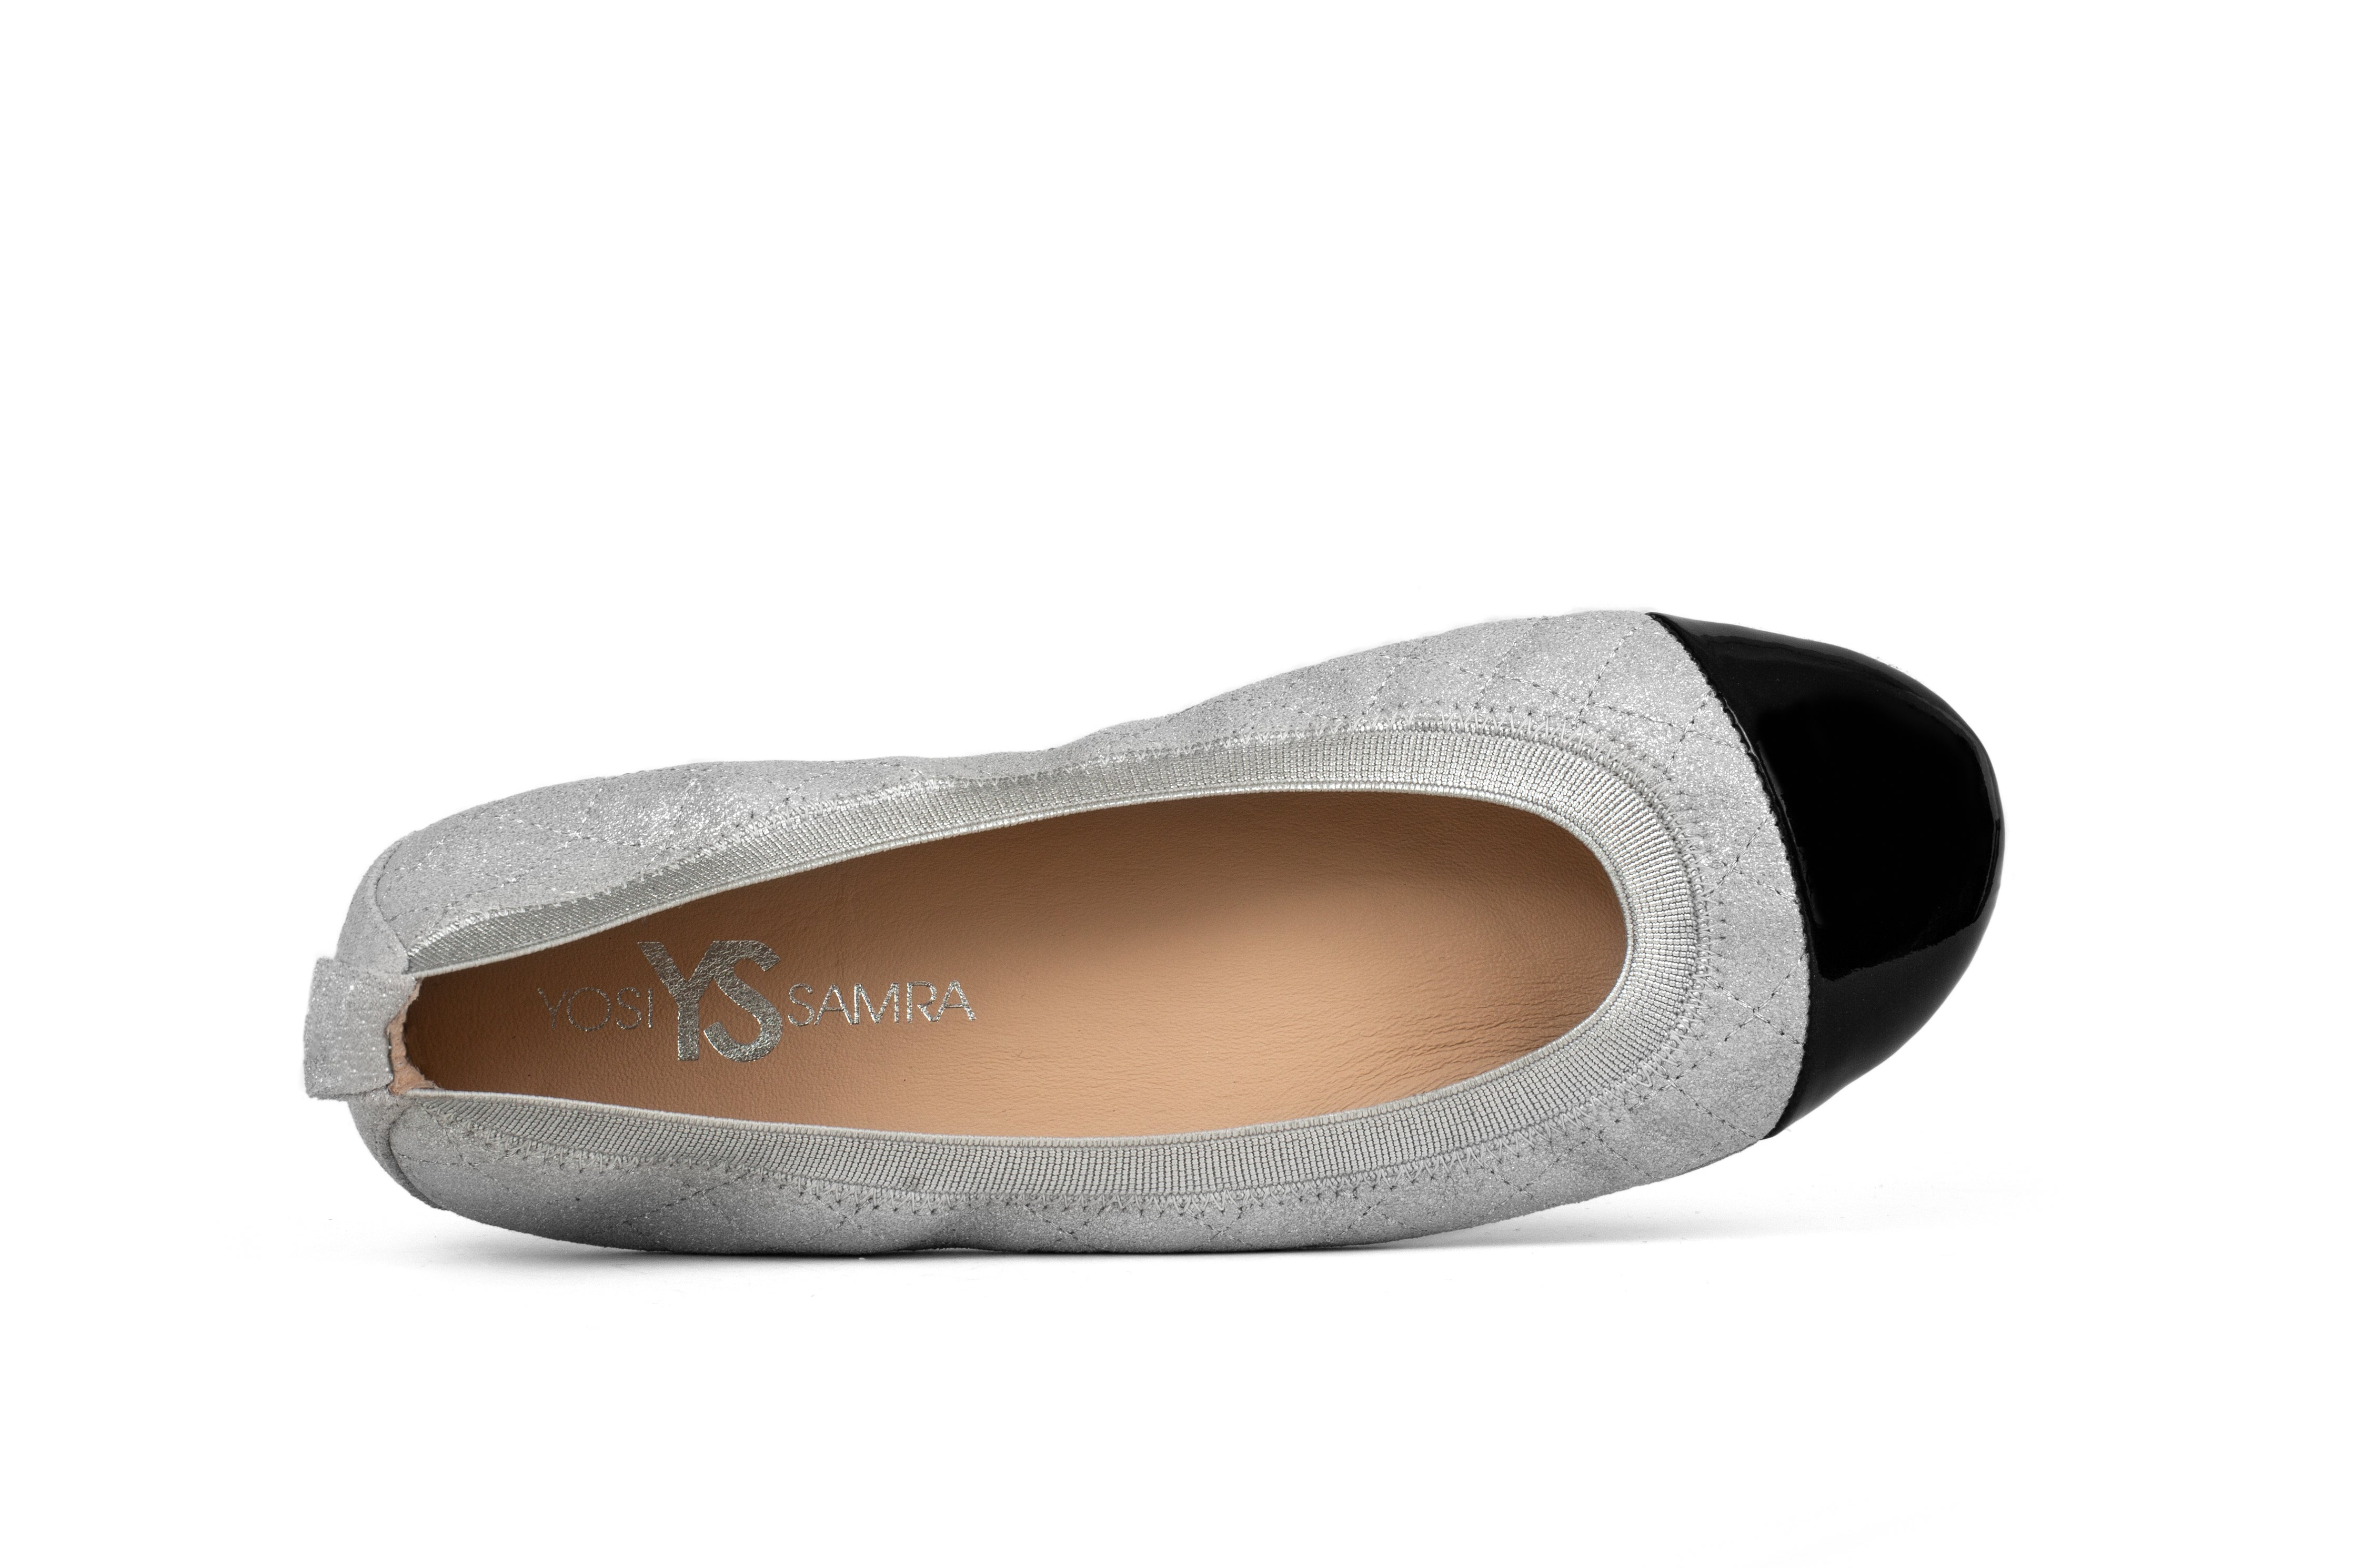 Samantha Silver Suede and Black Patent Cap Toe Ballet Flat